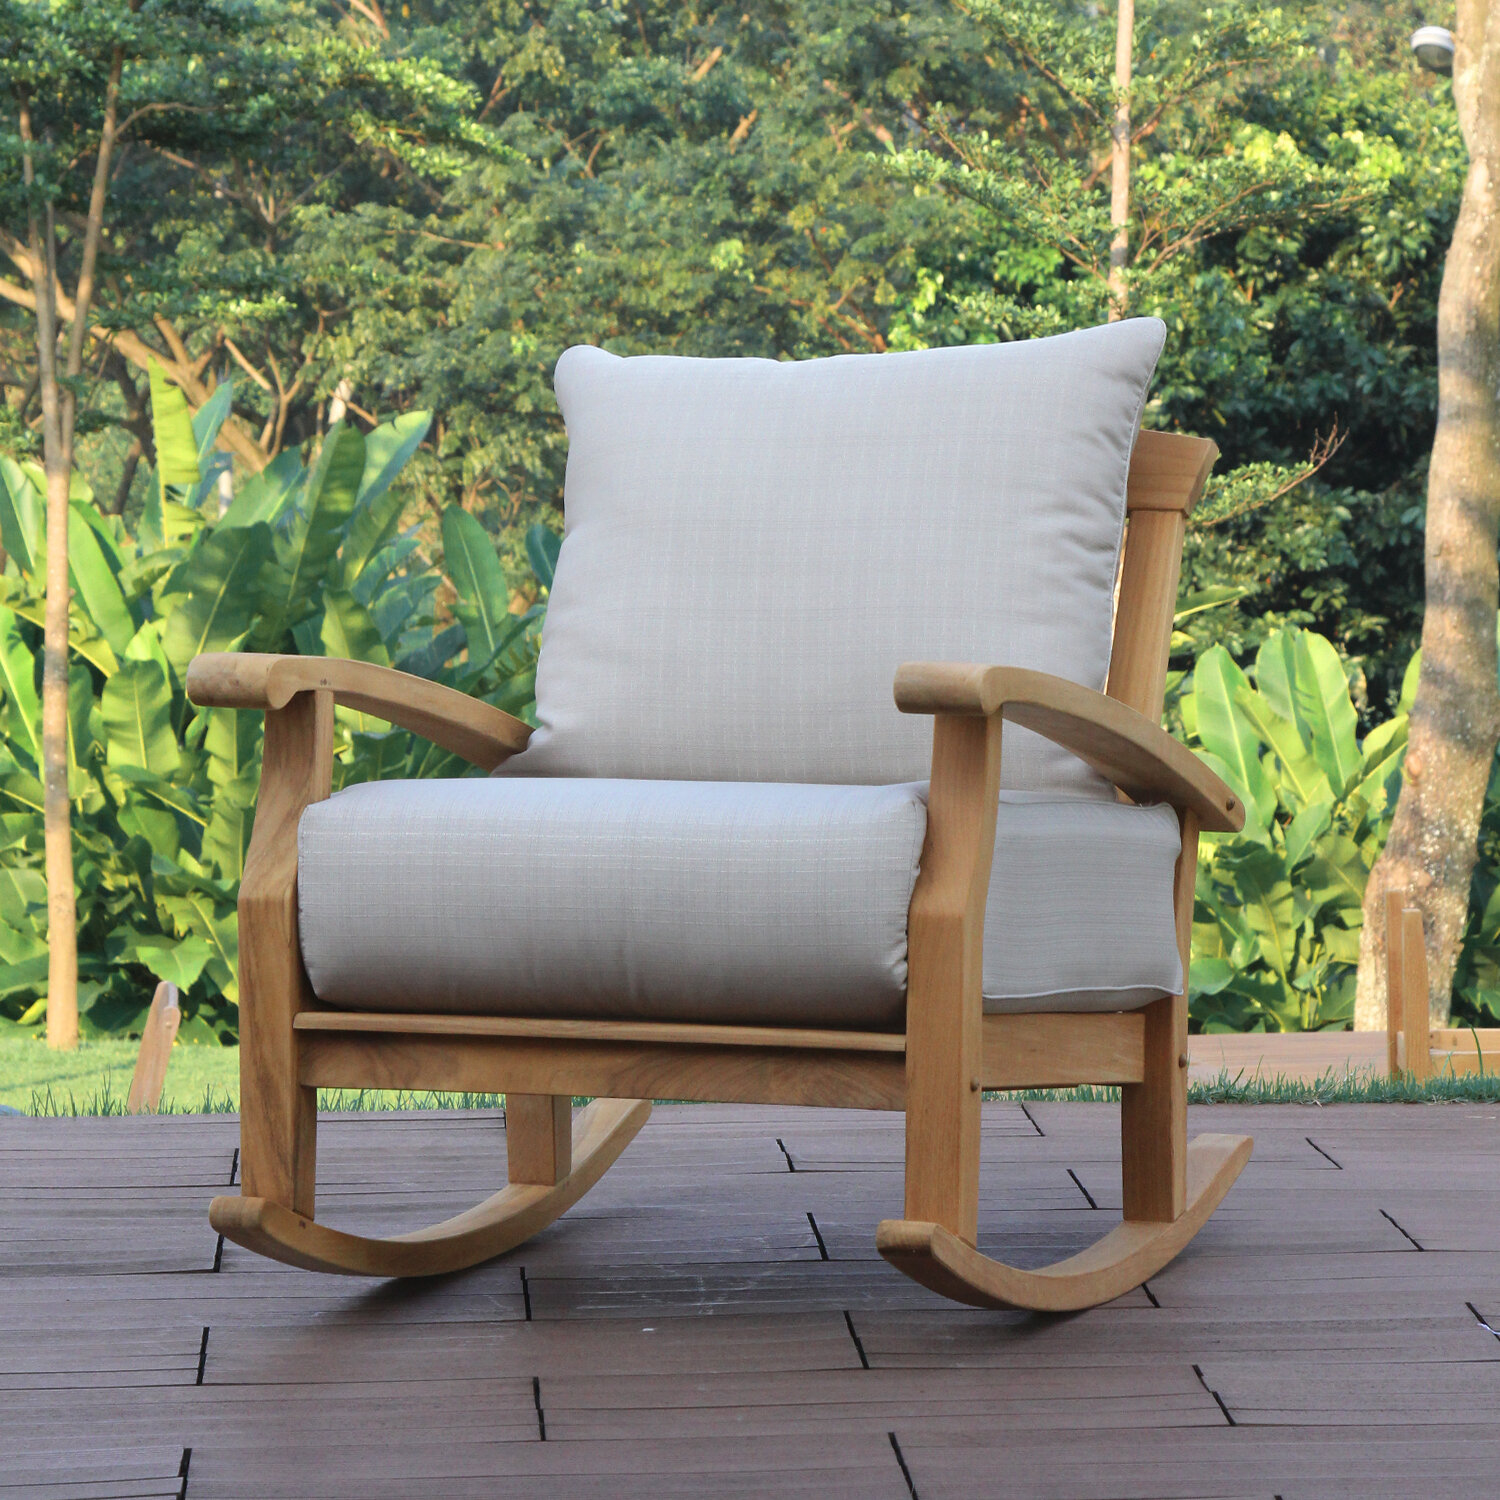 Can Outdoor Furniture Cushions Get Wet Html Car Design Today